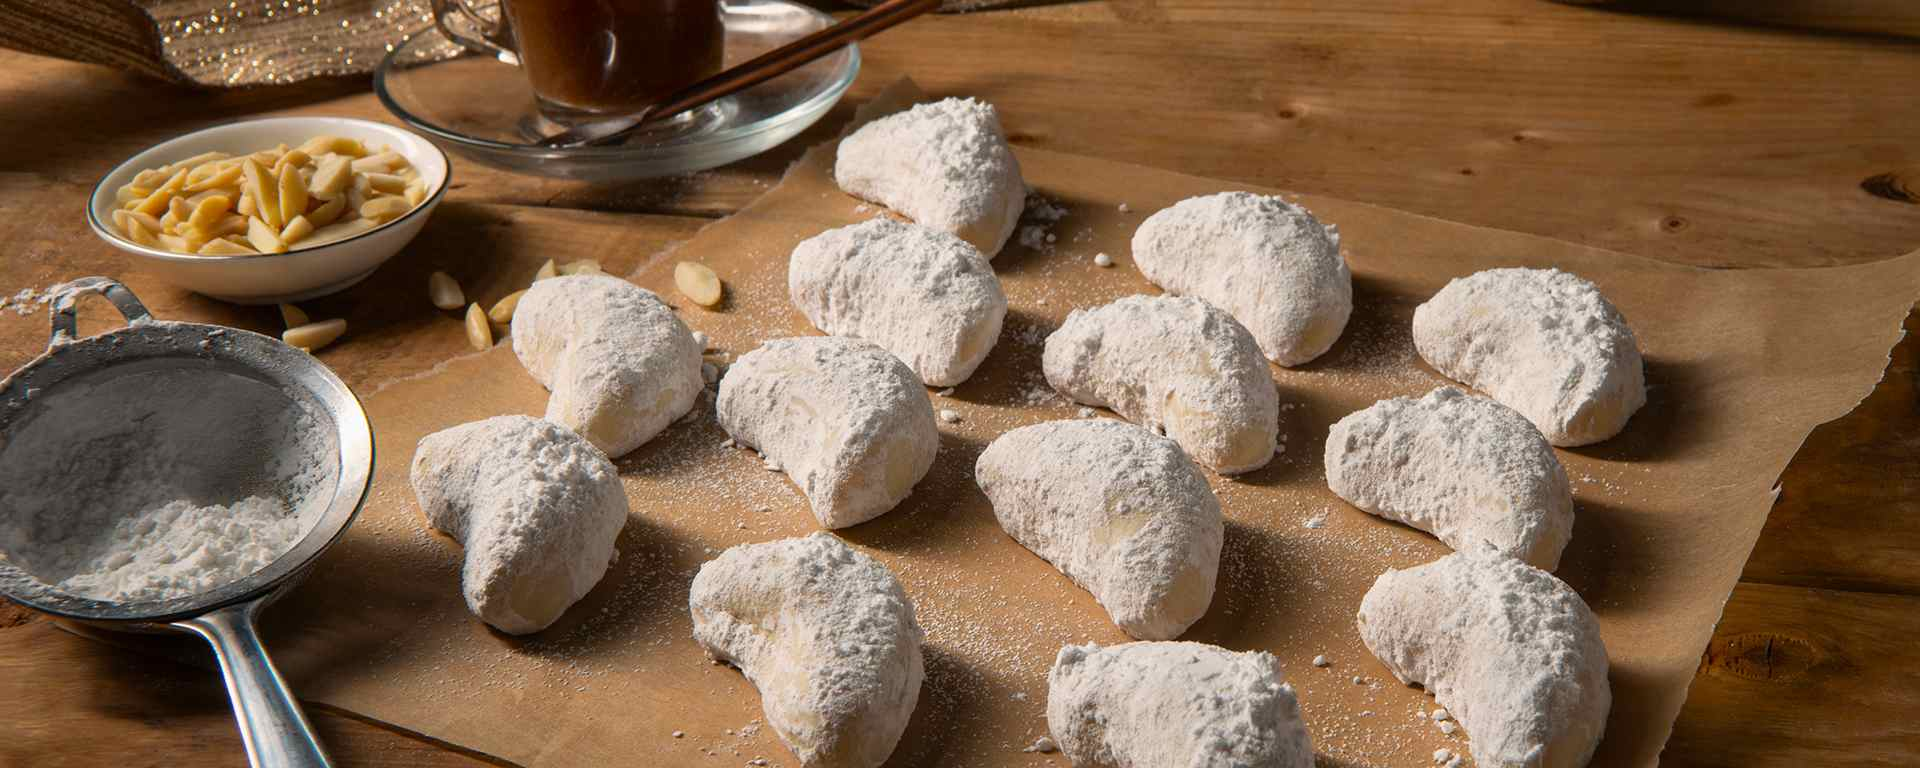 Photo for - Kipferl - German Almond Crescent Cookies